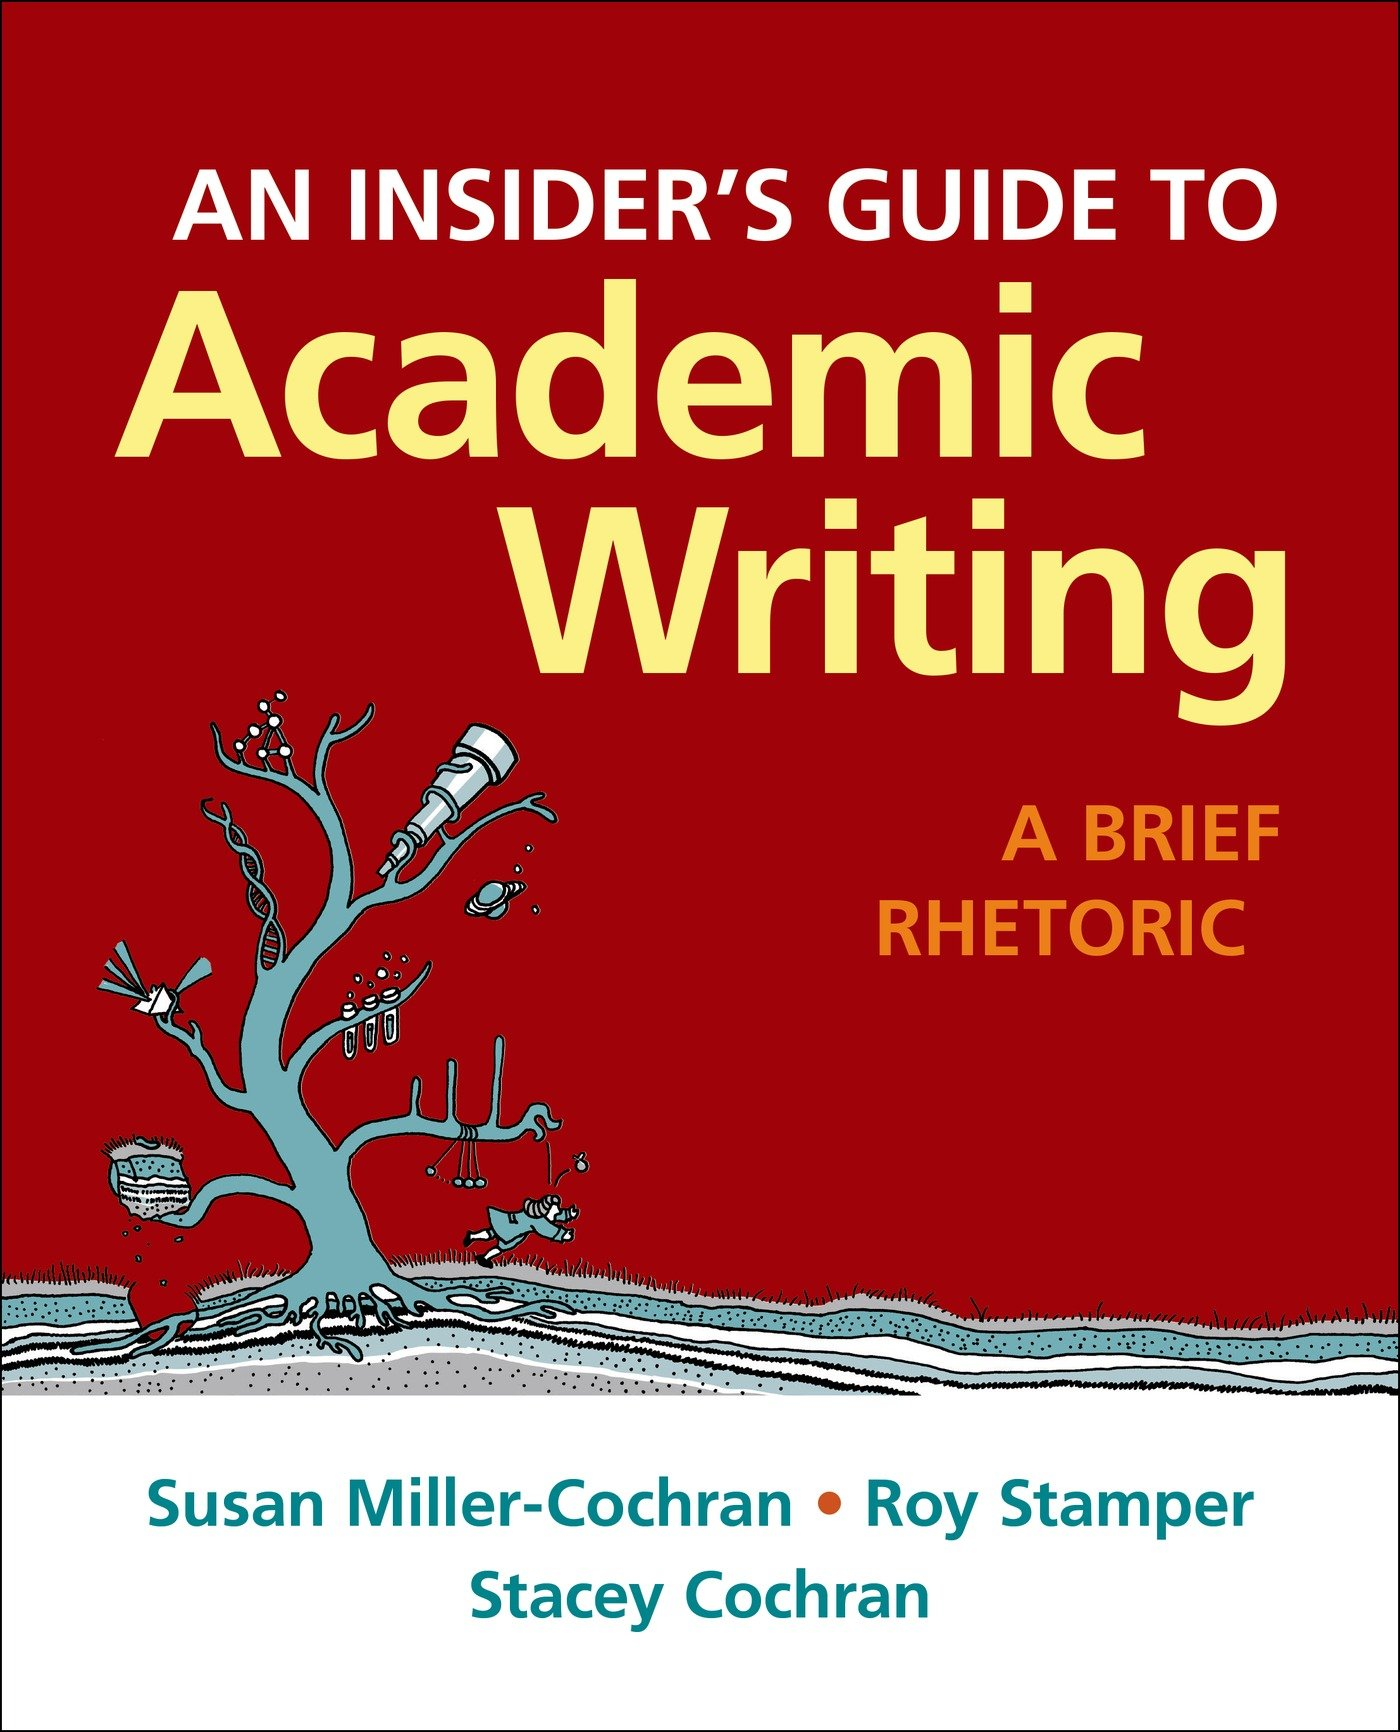 insiders guide to academic writing brief & documenting sources in mla style 2016 update